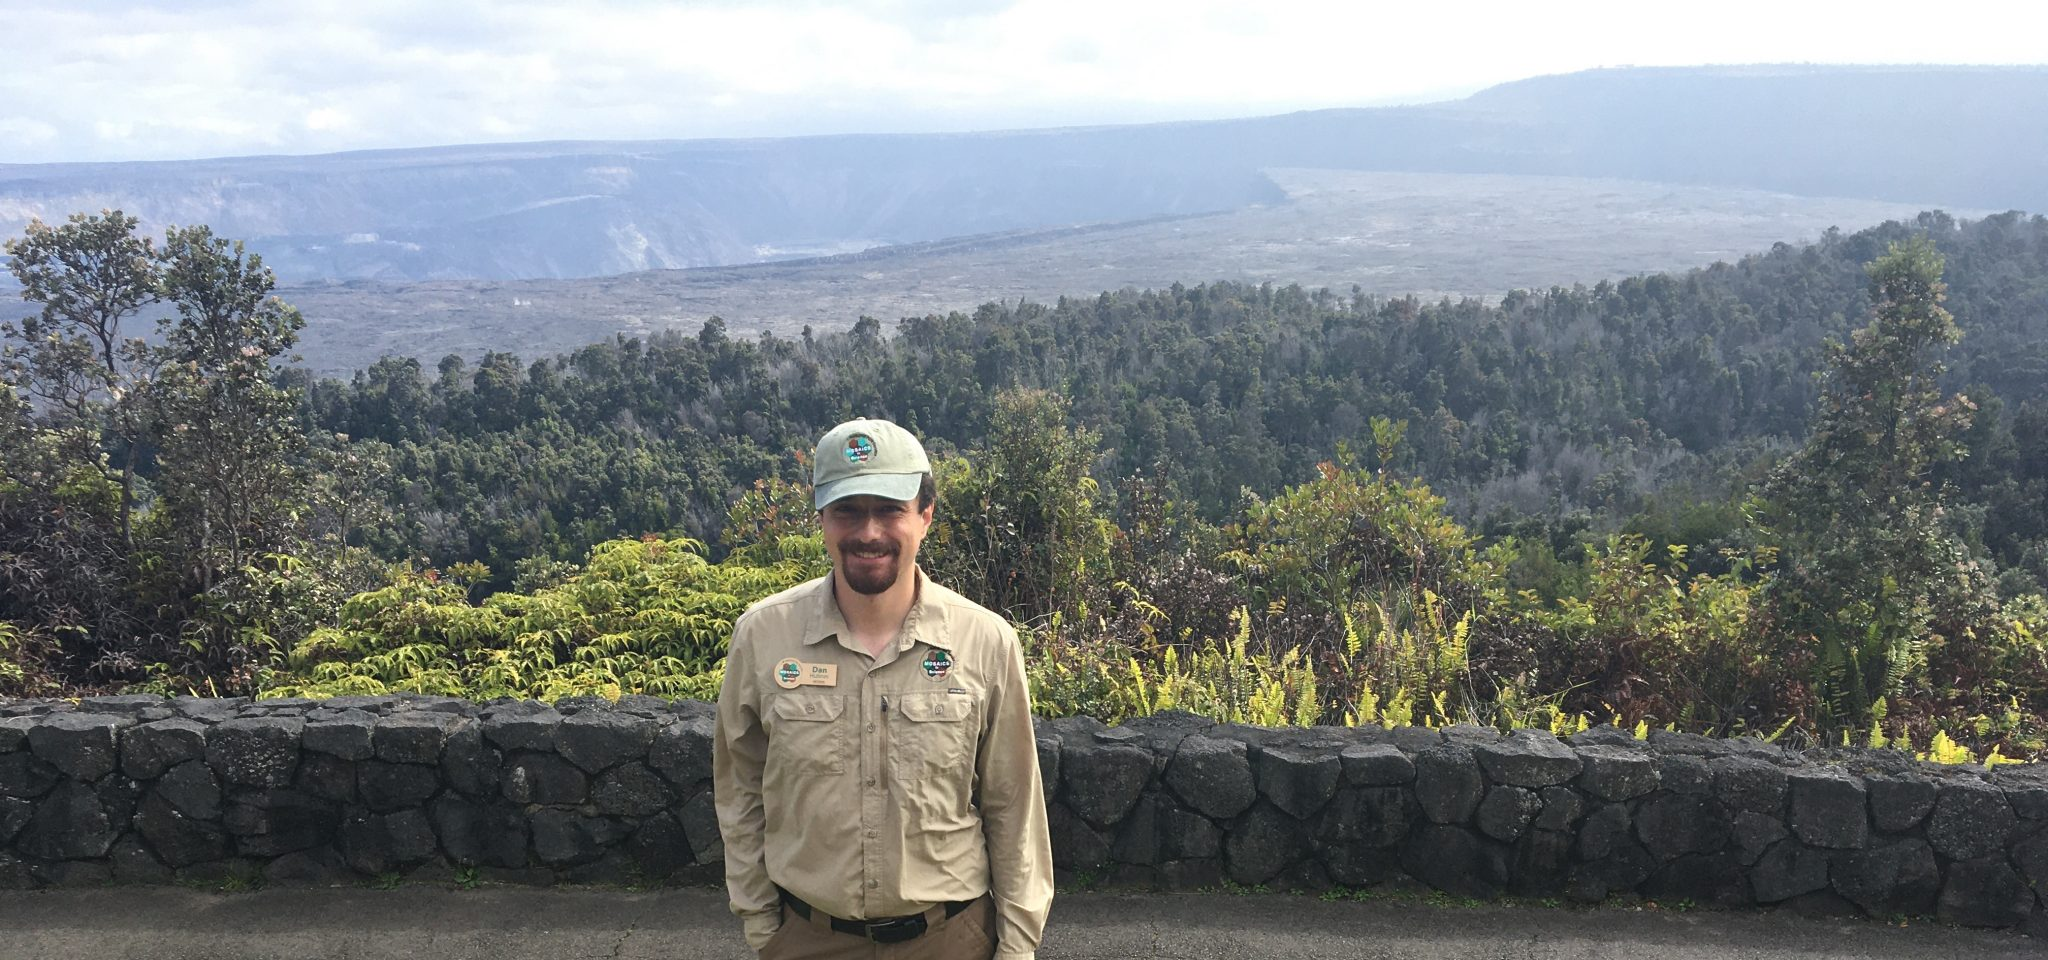 Intern stands in front of large volcanic caldera